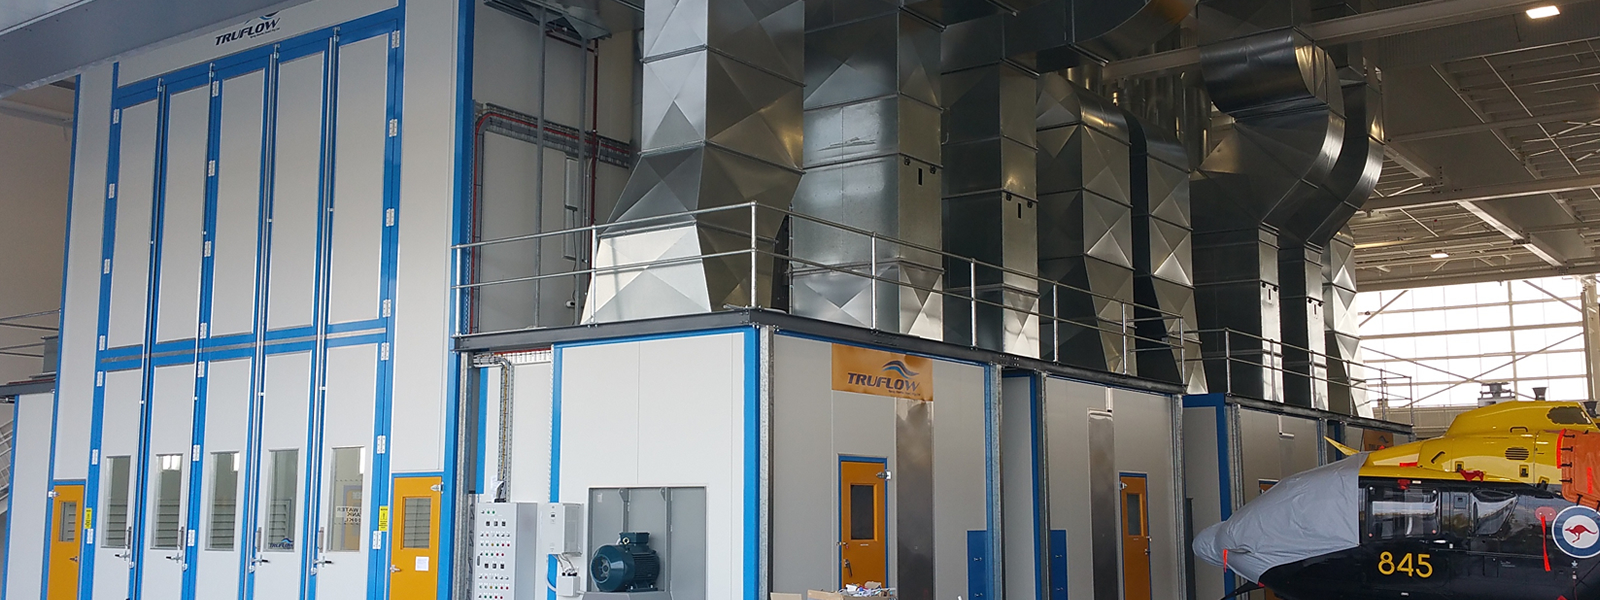 Helicopter Spray Booth facility